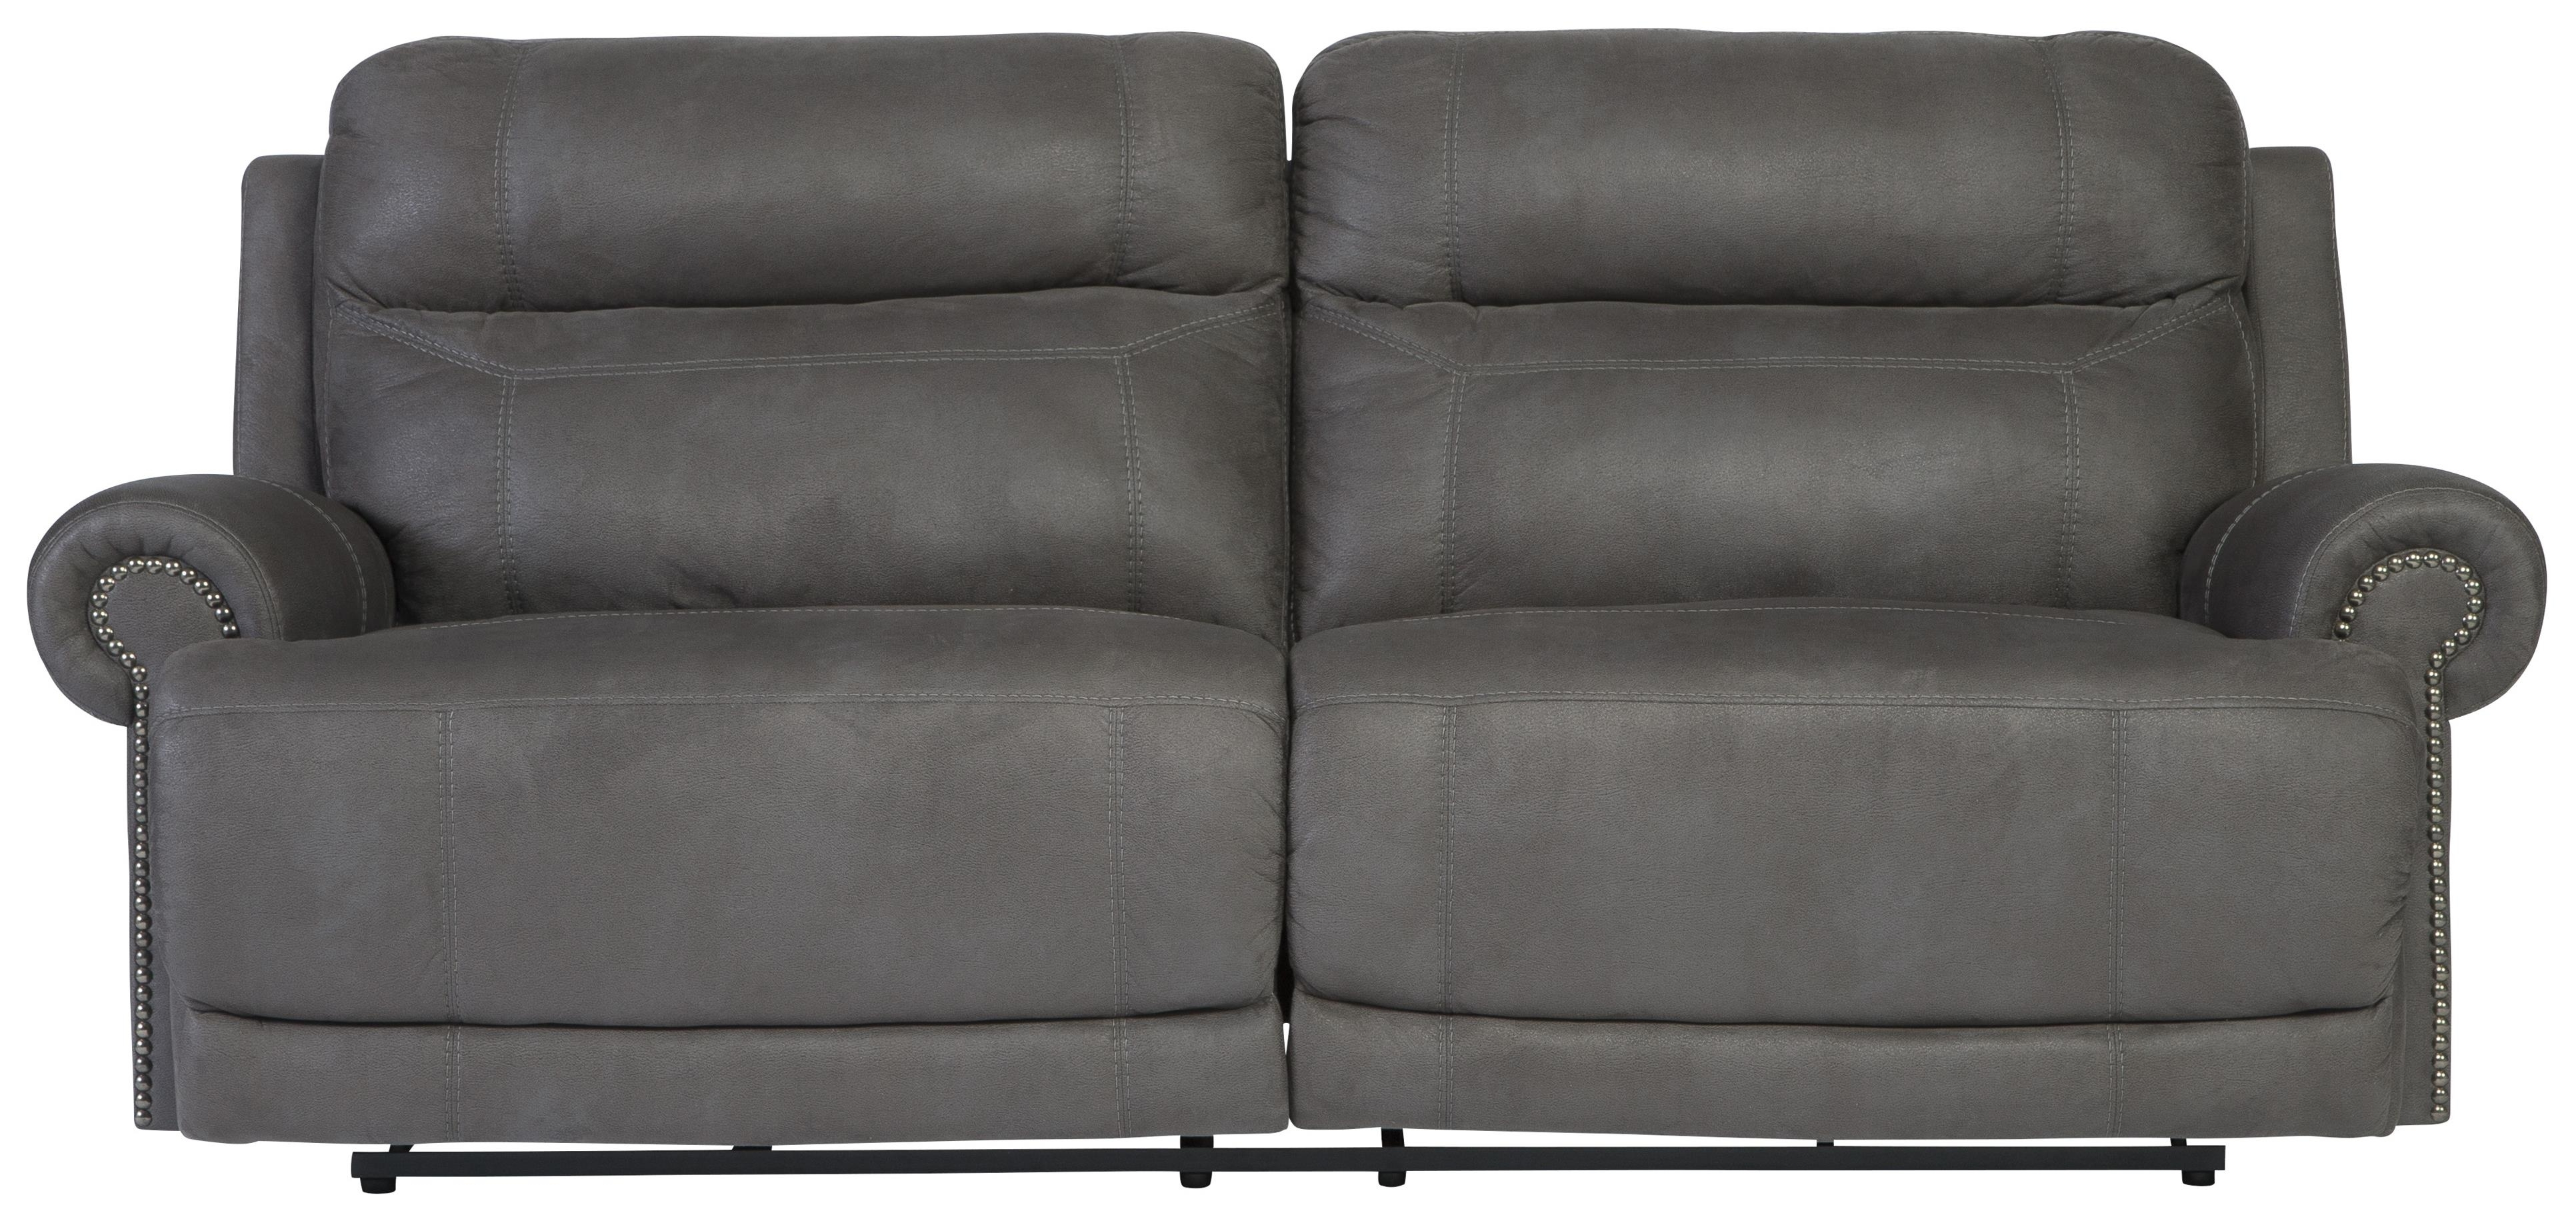 2 Seat Recliner Sofas Within Fashionable Signature Designashley Austere – Gray 2 Seat Reclining Sofa (View 6 of 15)